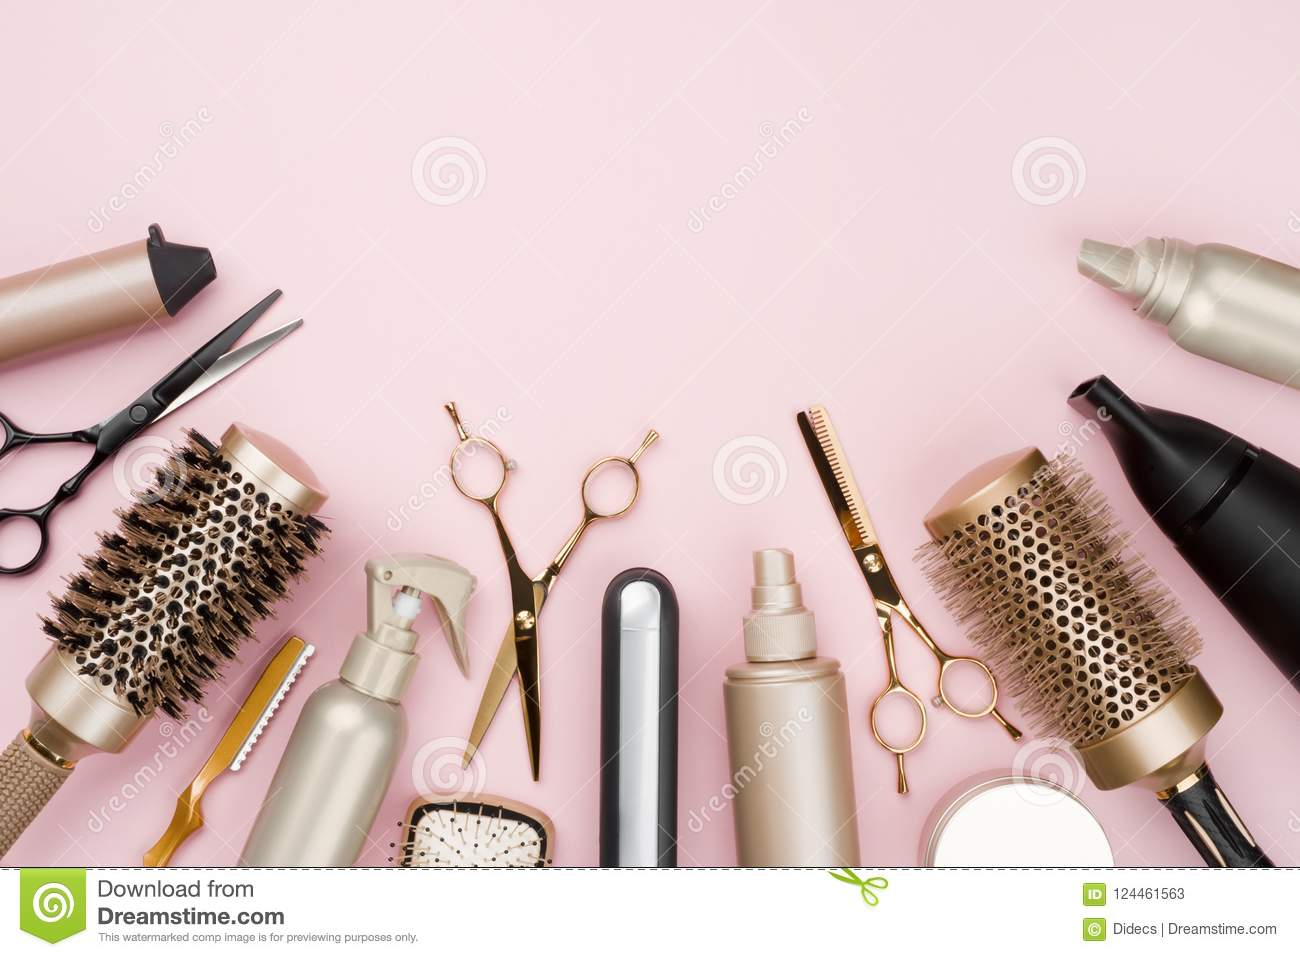 Tools Stock Photos - Download 371,421 Images - Page 2